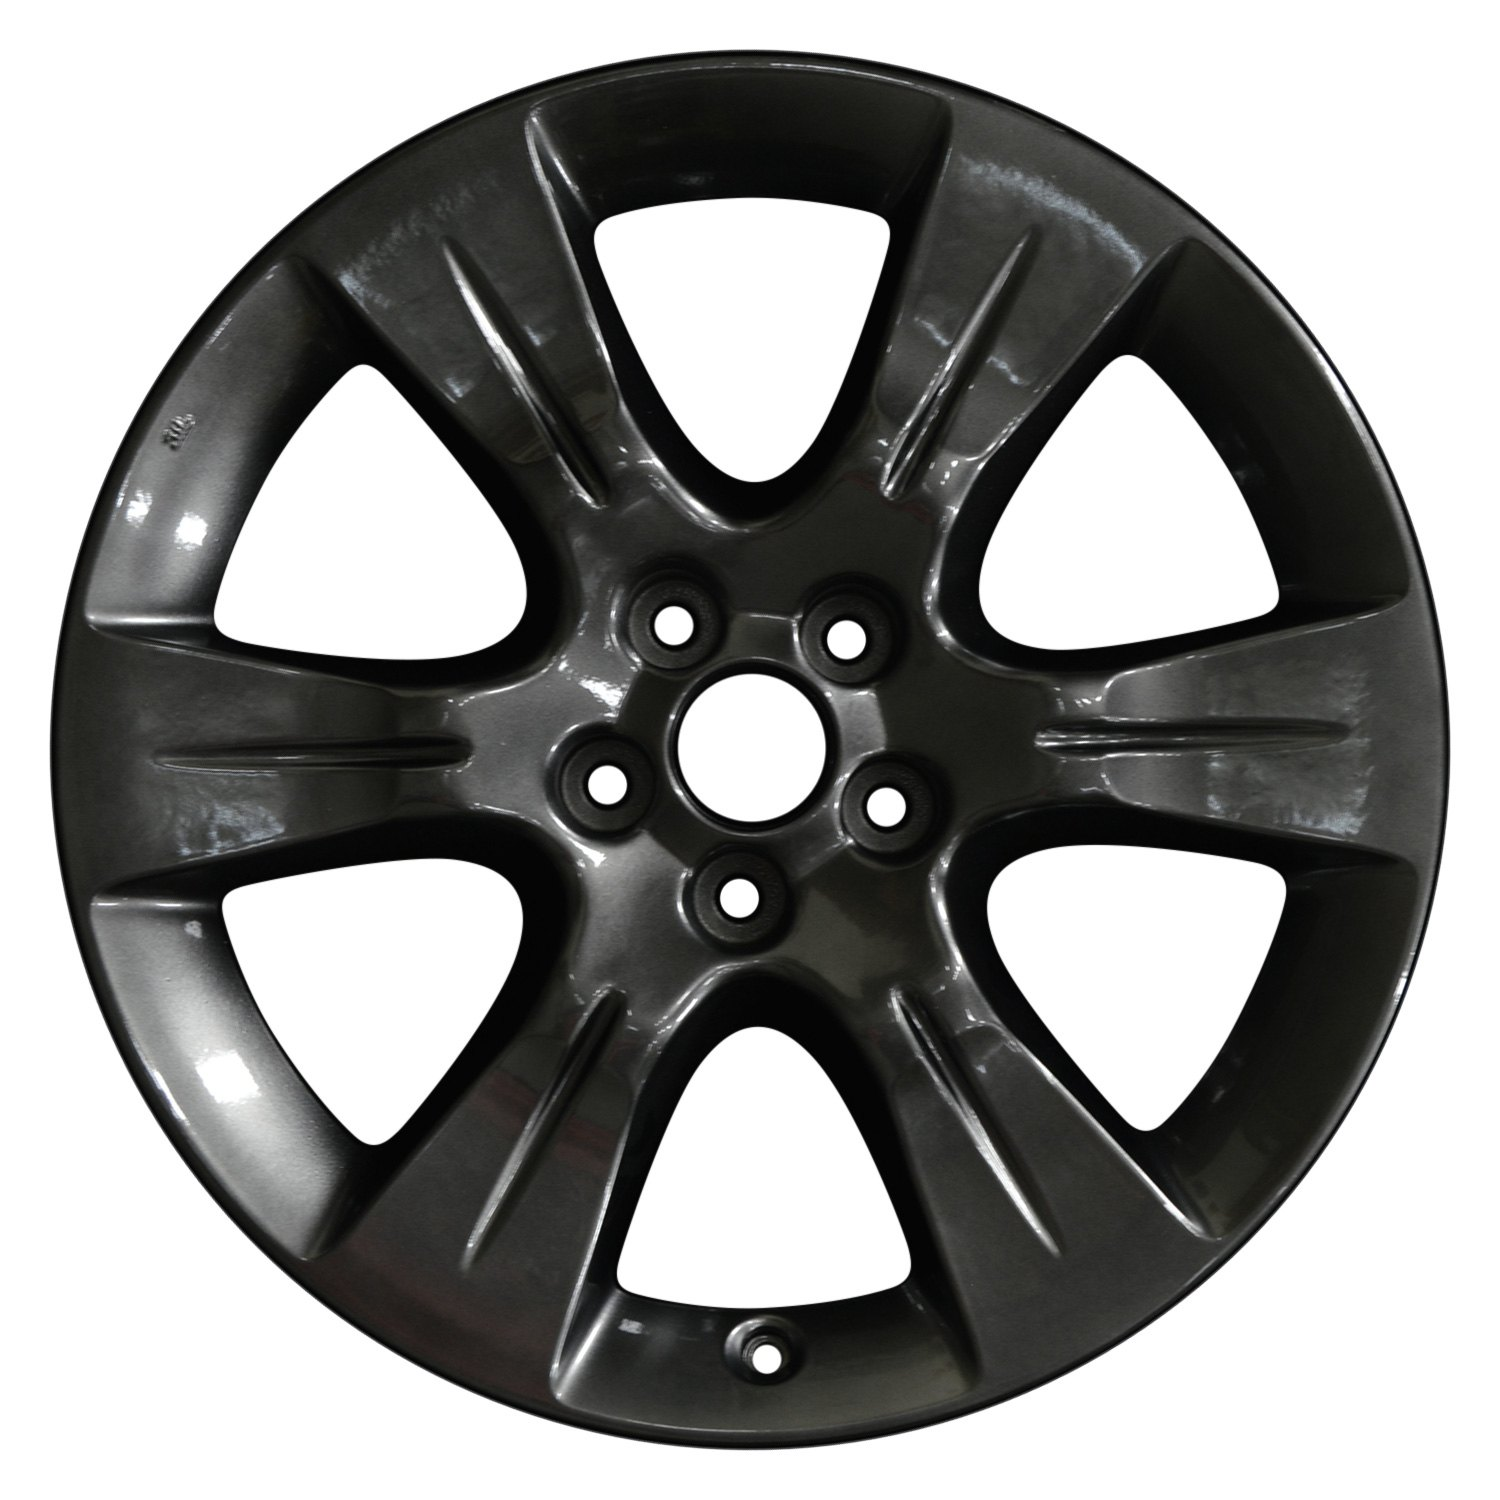 perfection wheel toyota sienna 2015 19 refinished 6 spokes factory alloy wheel. Black Bedroom Furniture Sets. Home Design Ideas